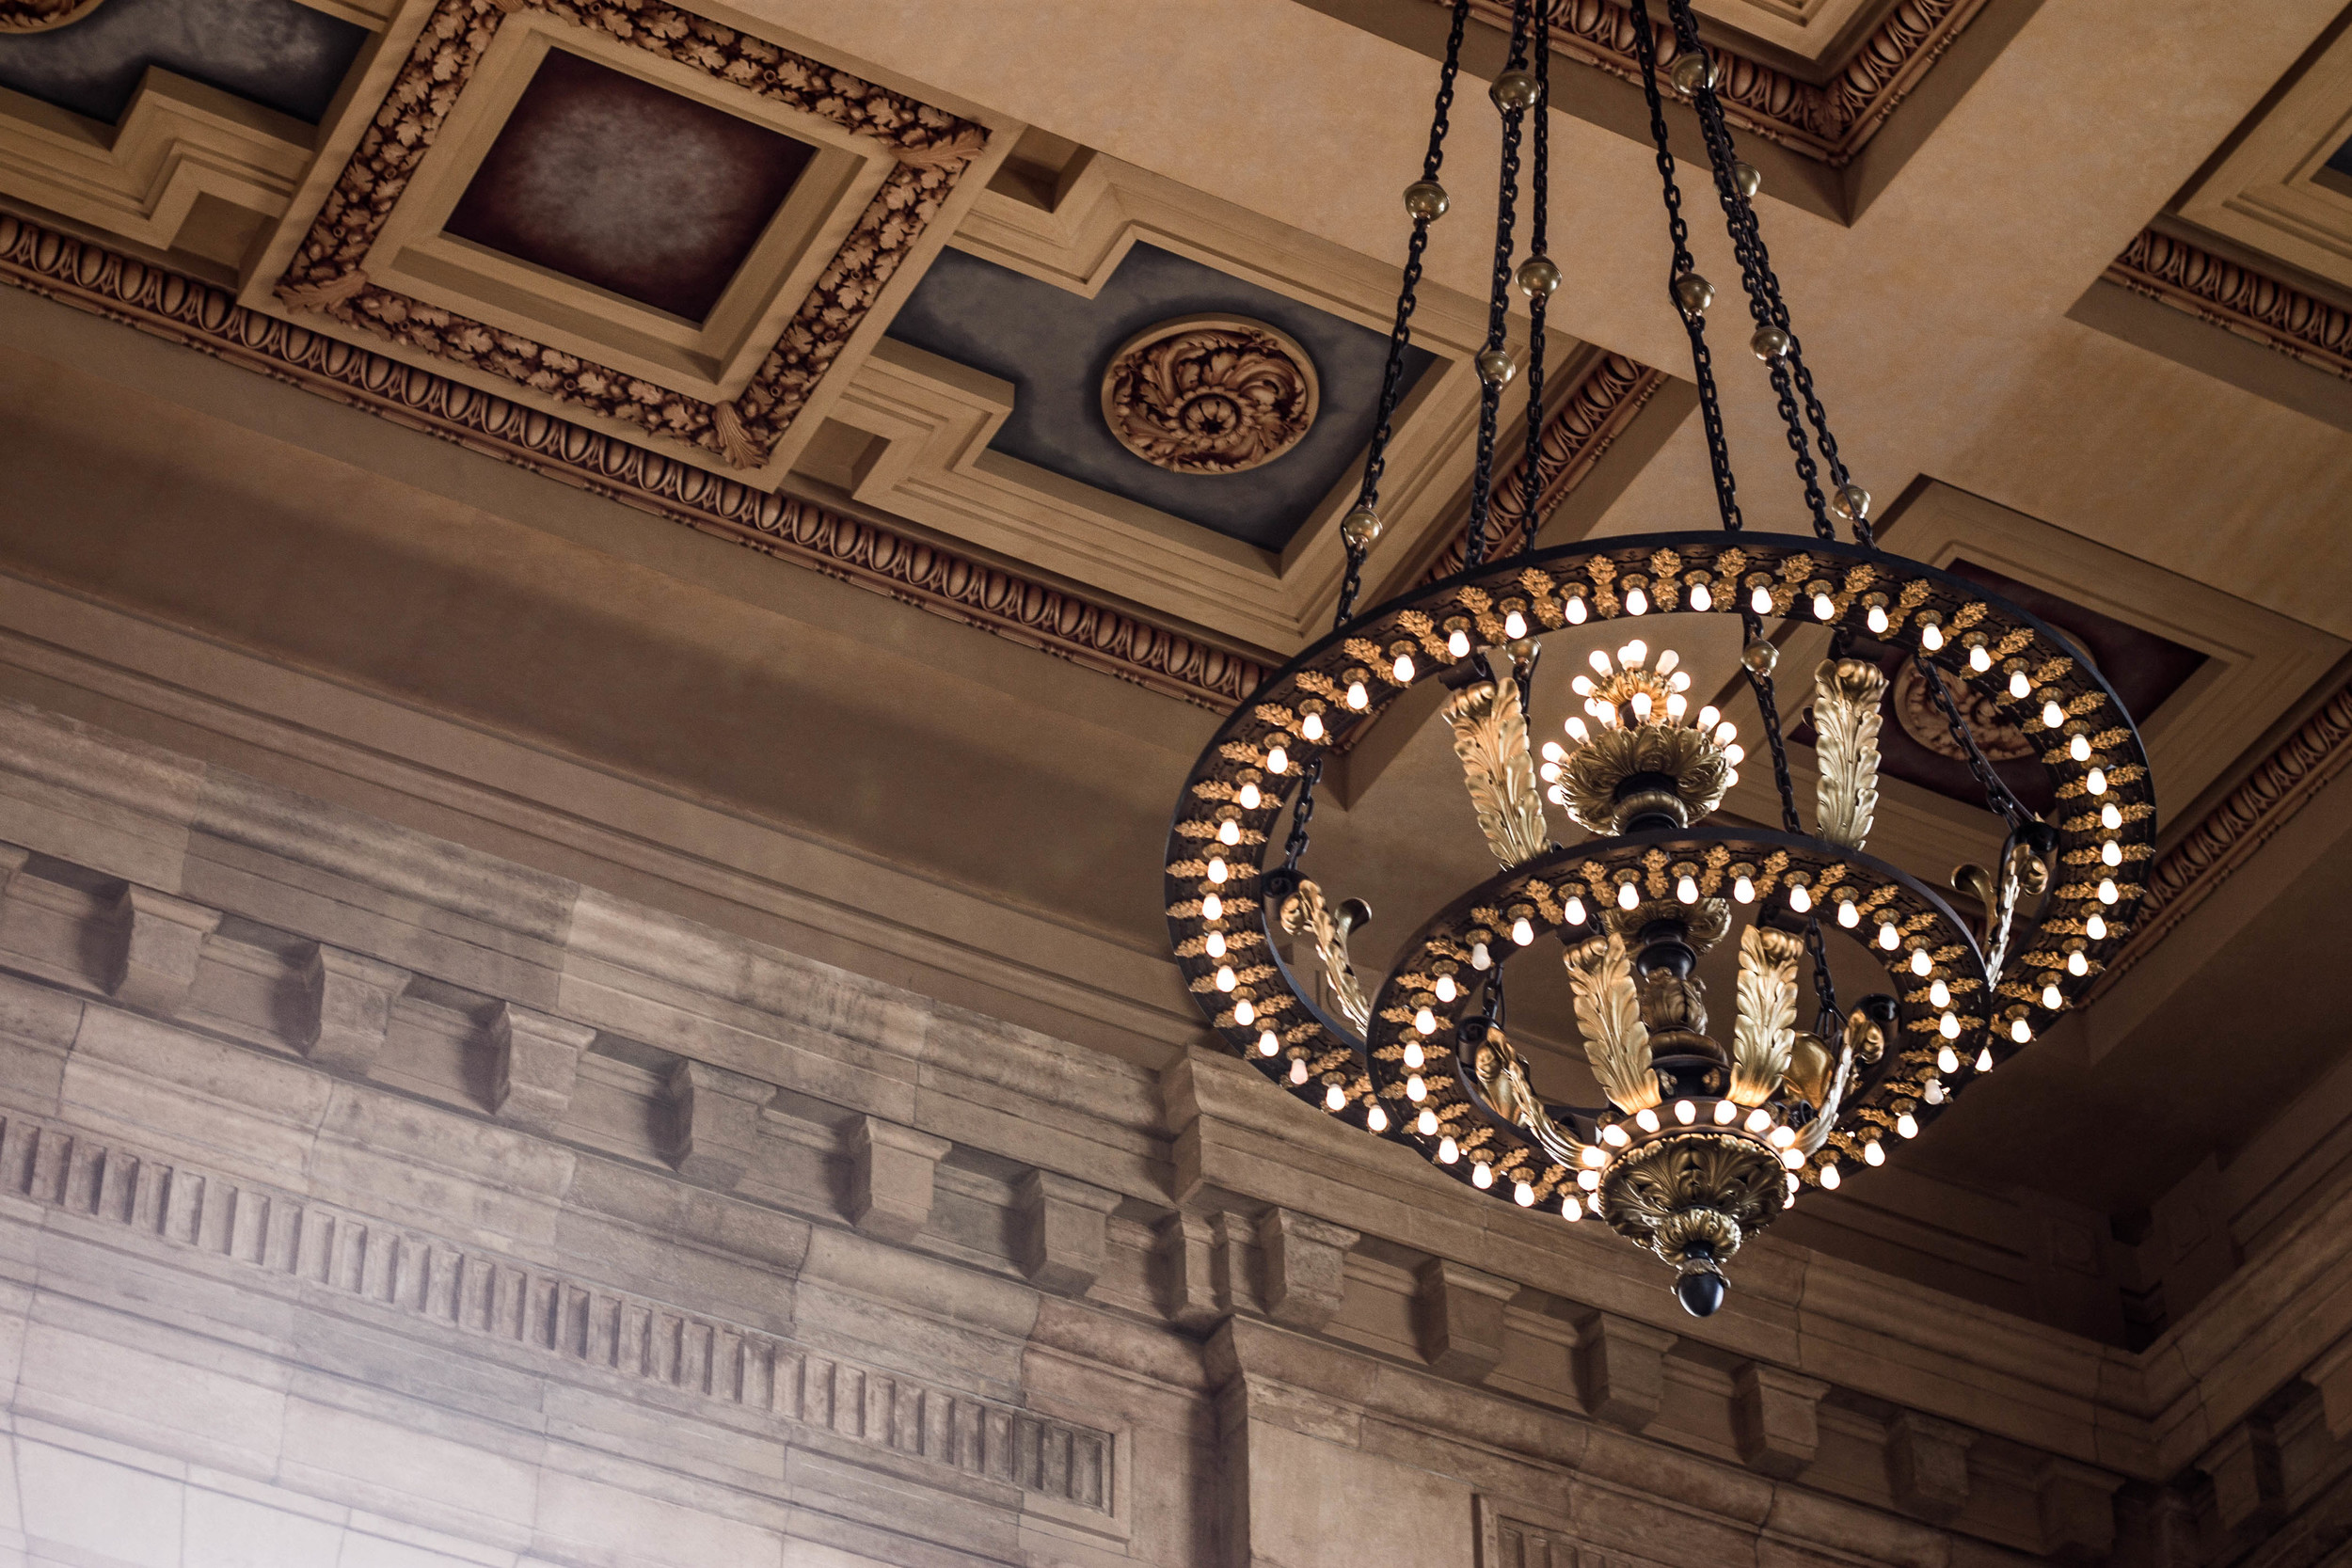 Chandelier at Union Station